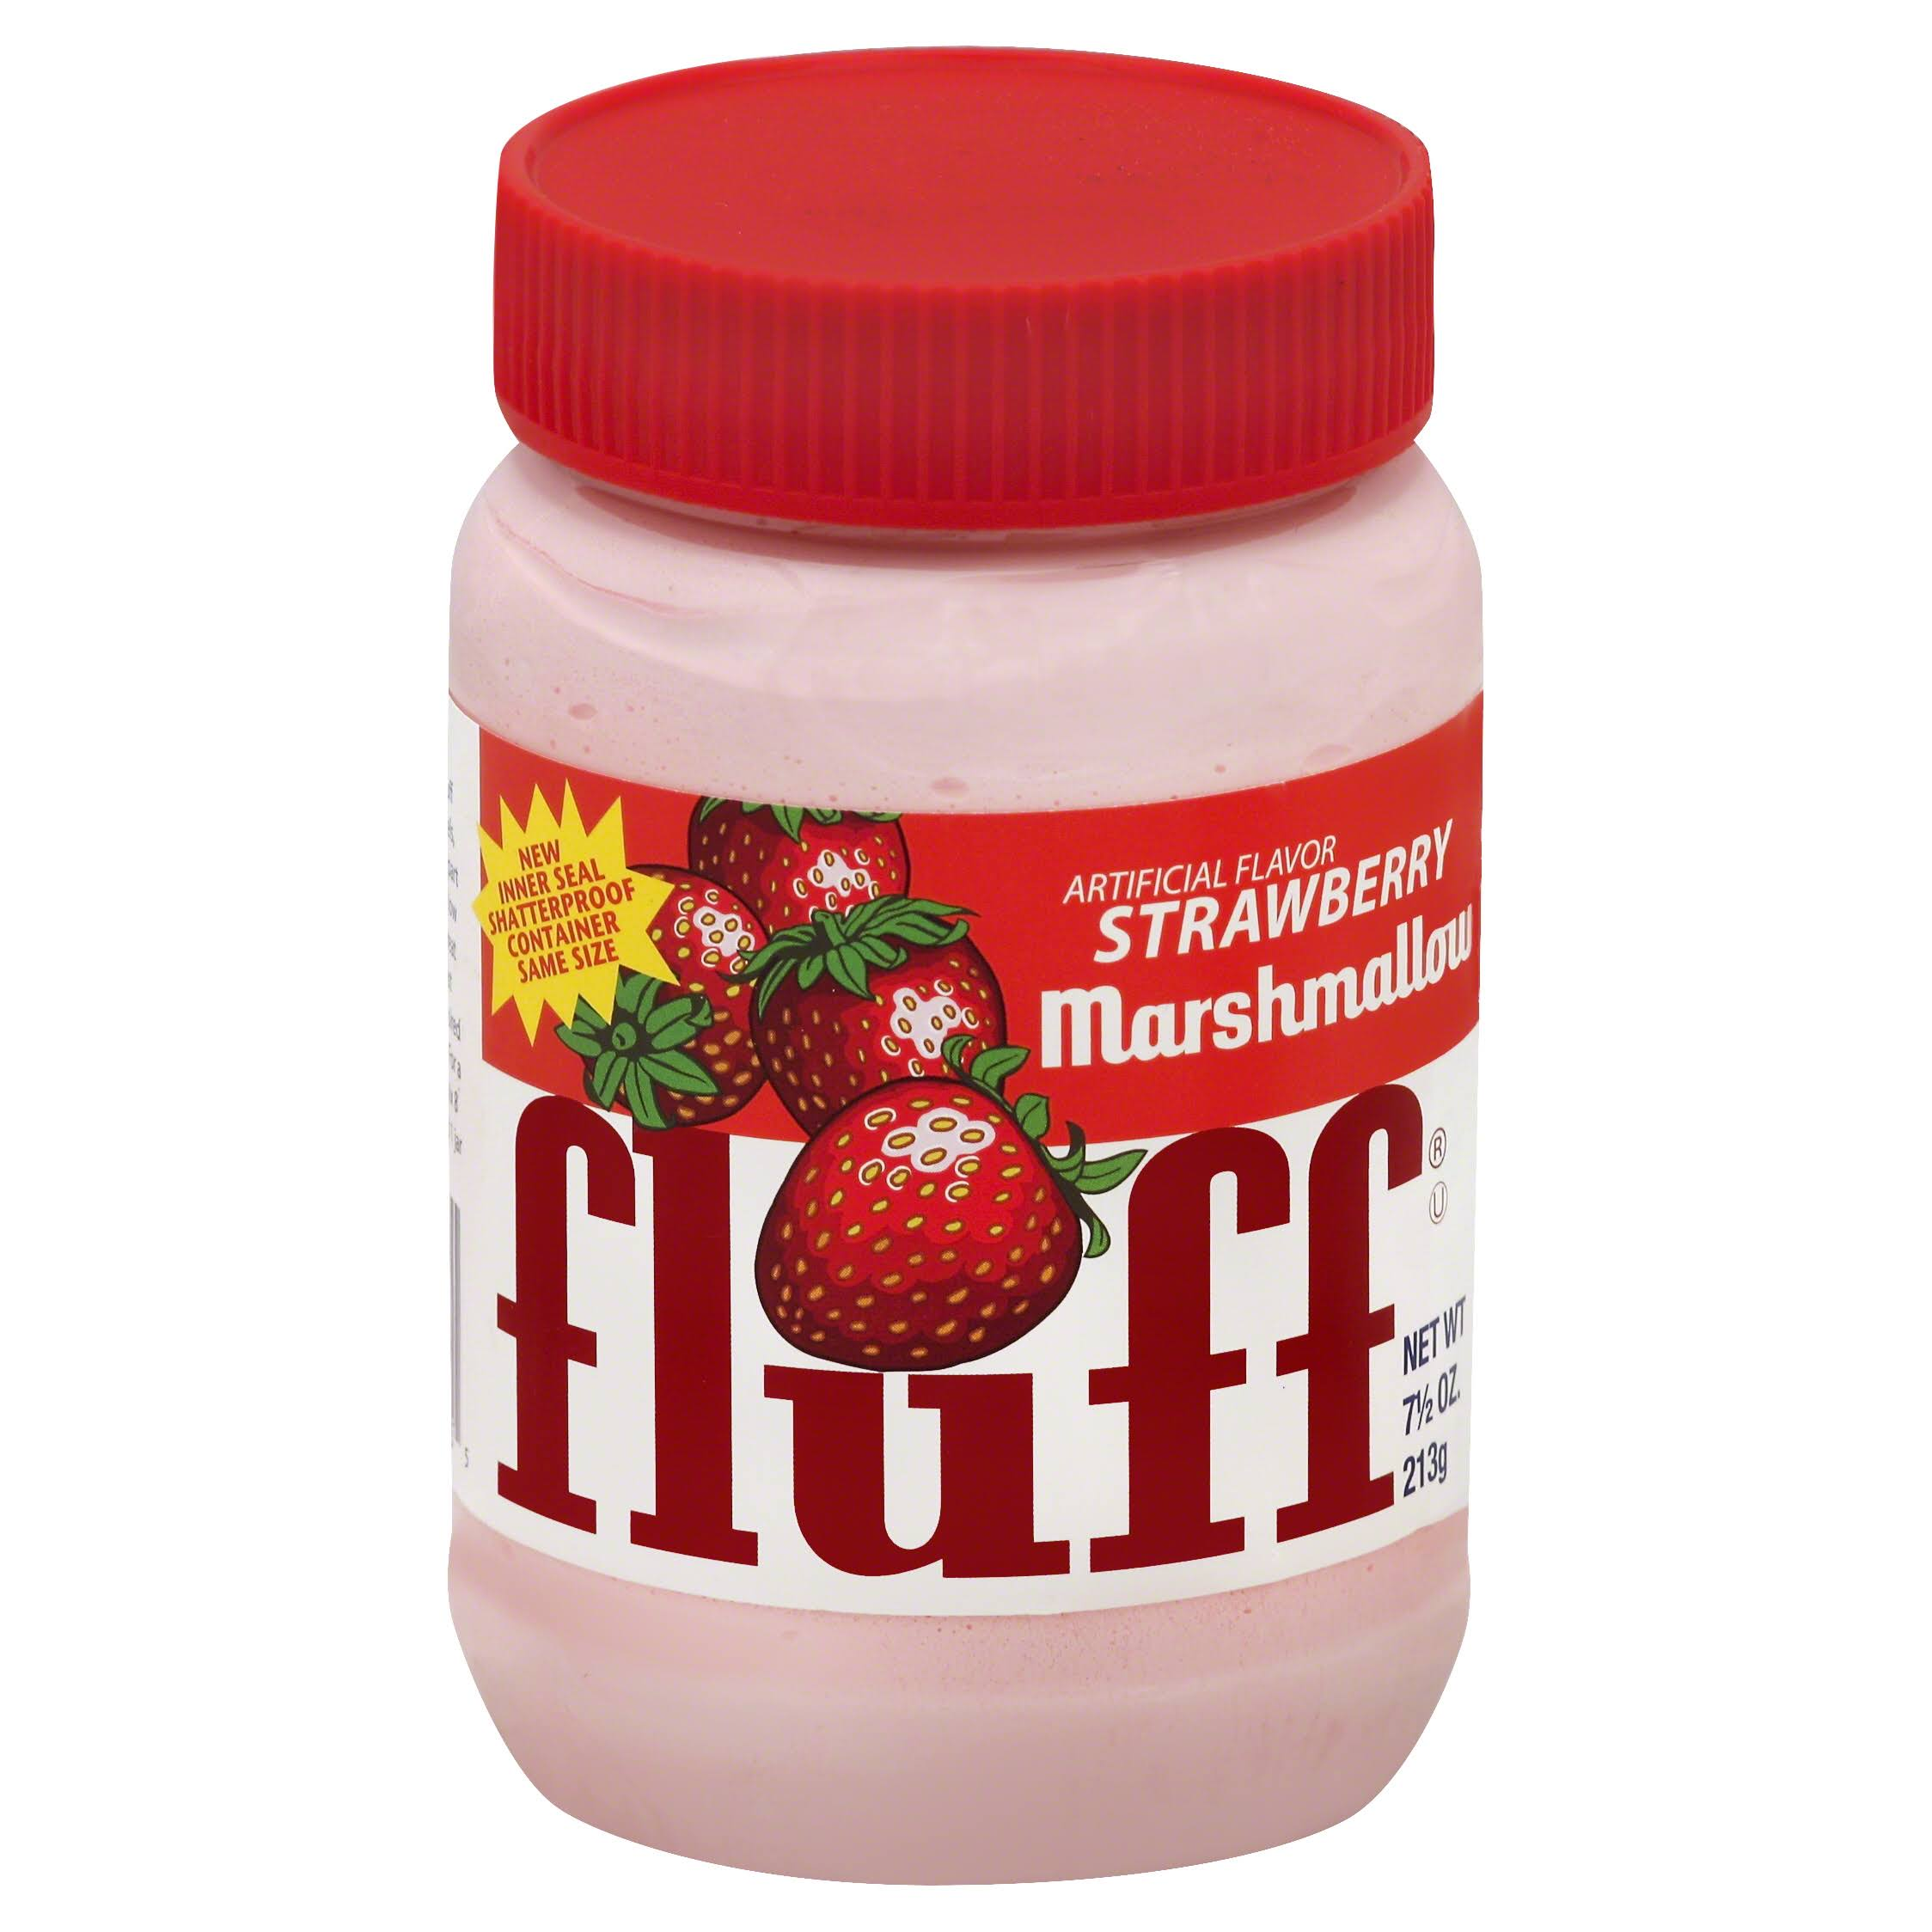 Fluff Marshmallow - 213g, Artificial Strawberry